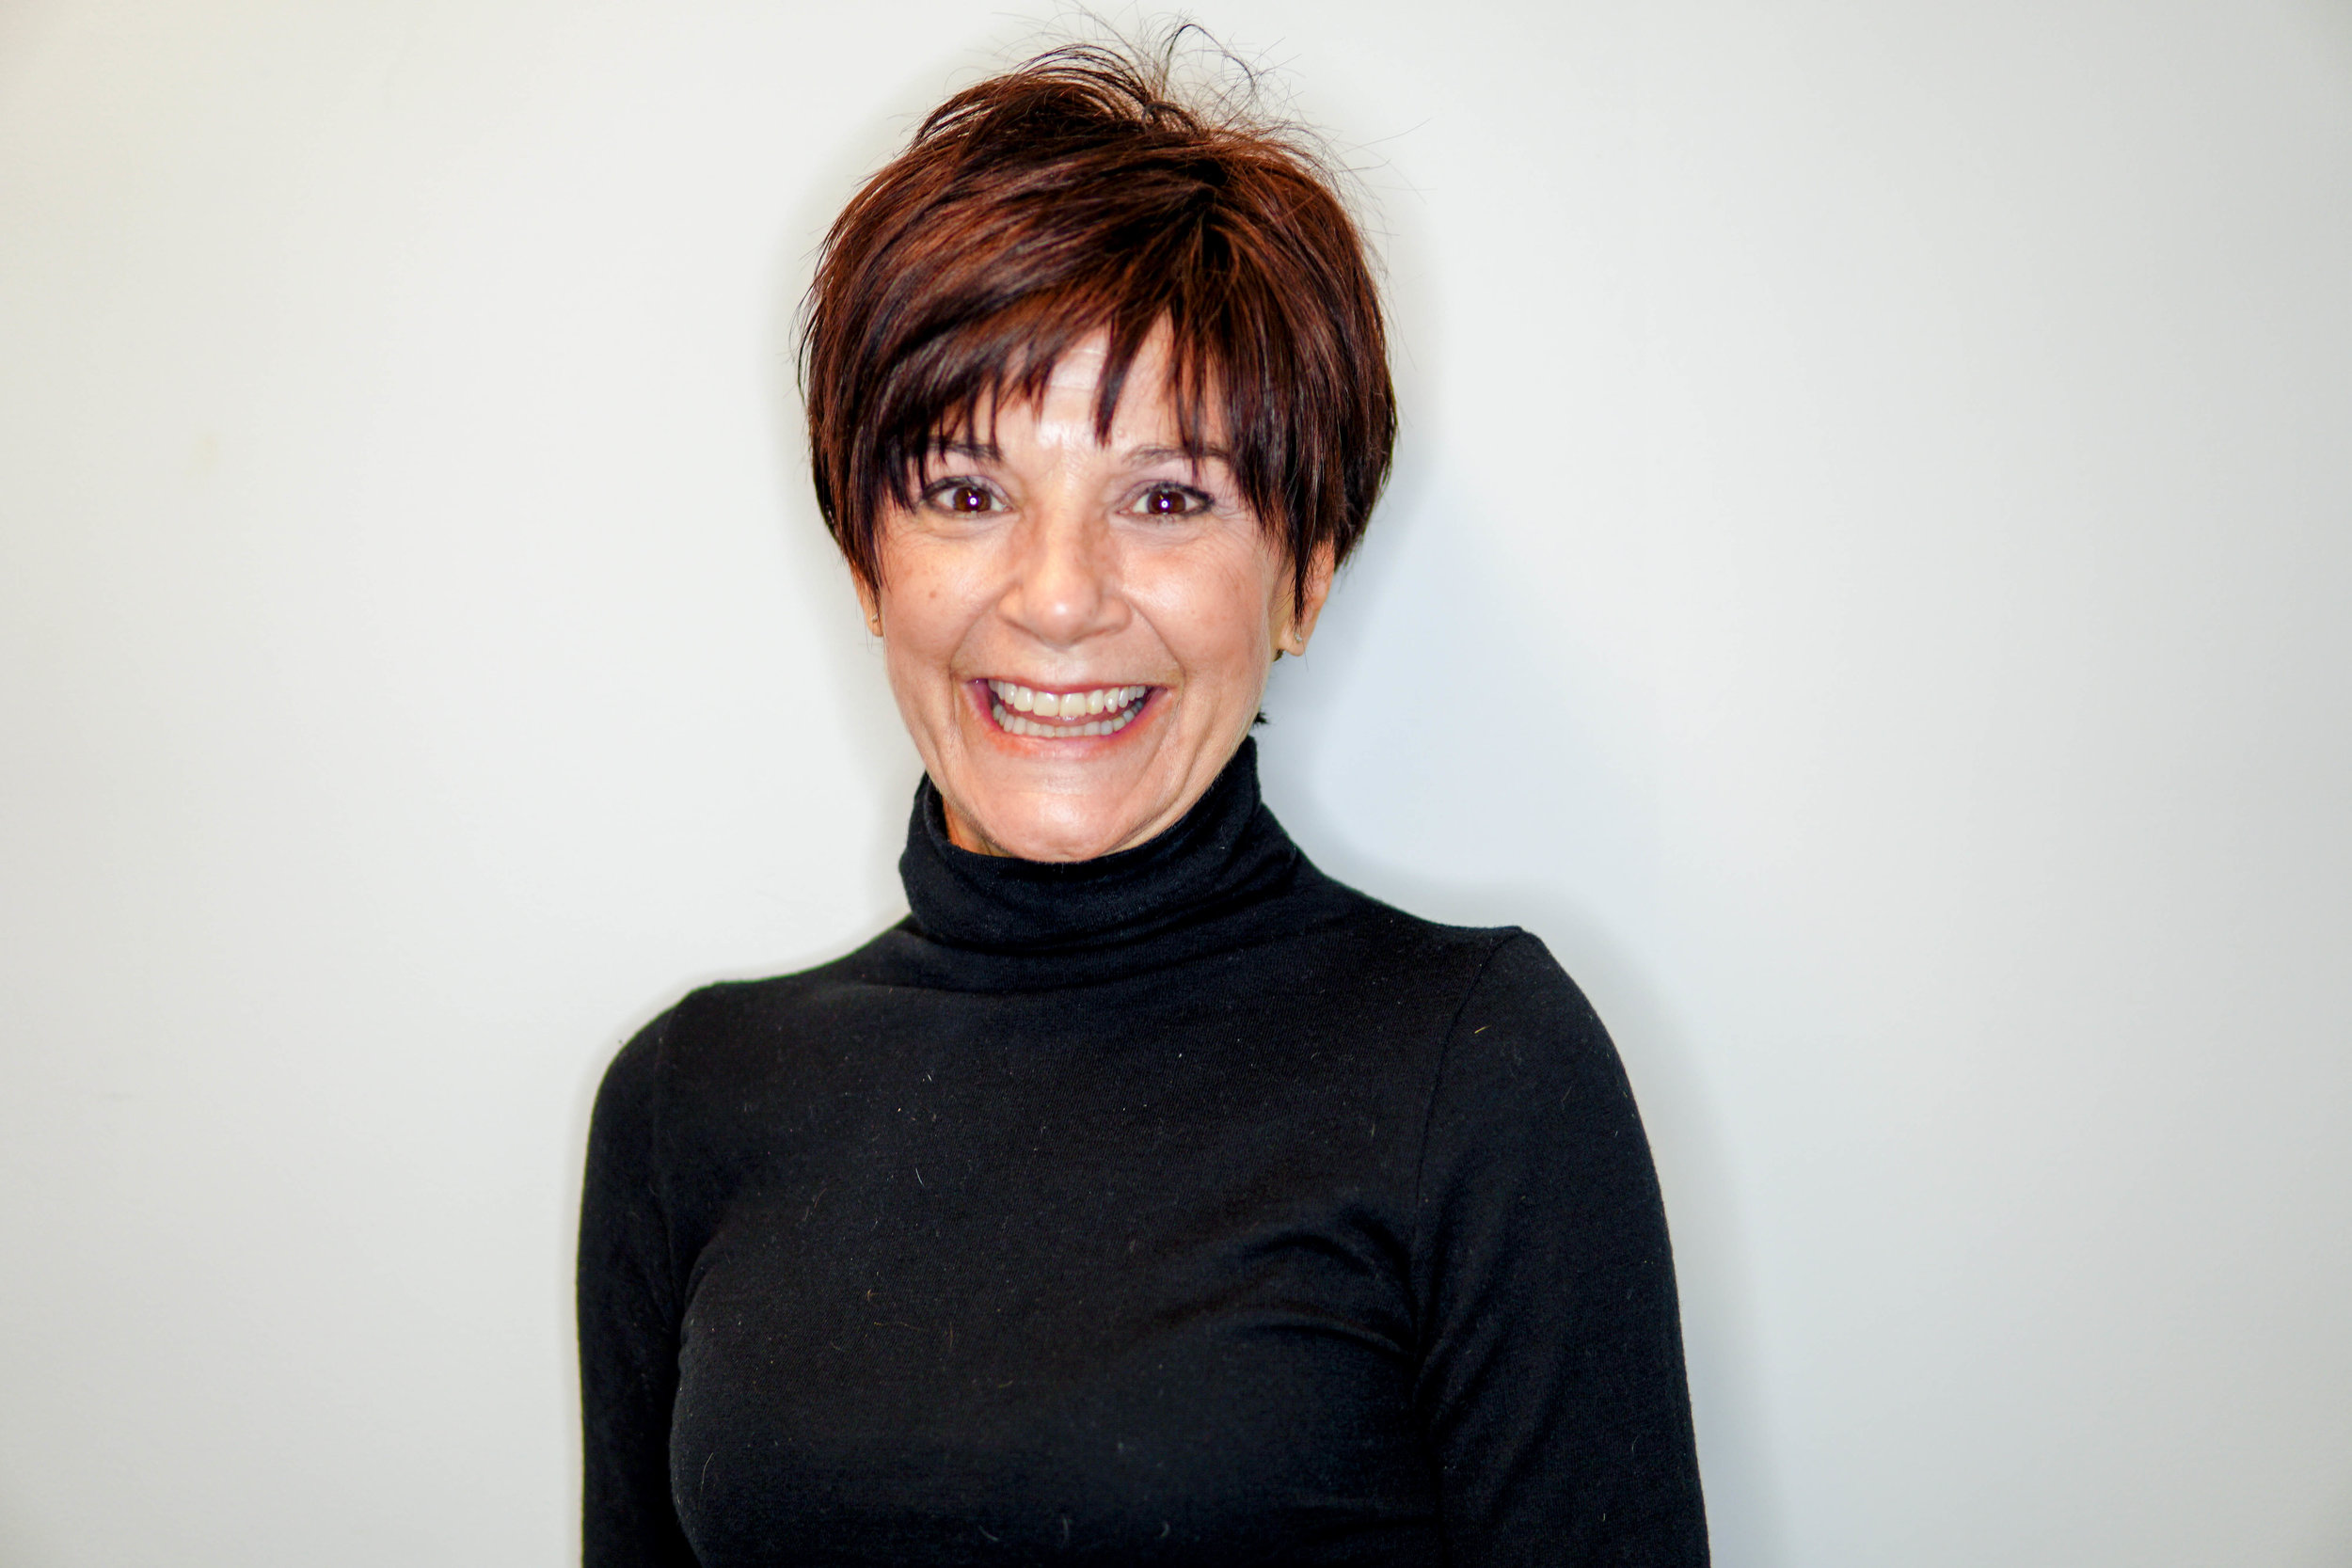 marilyn - senior stylist, ownerWhat would you tell your 5th grade self?Stick with piano lessonsWhat's your favorite place on earth?Cabin in Northern SaskatchewanWhat are three words that describe you bestEnergetic, funny, & warmIf you were a flower, what would you be?A tulipWhat is your favorite movie?Mrs Doubtfire or Man in the Moon